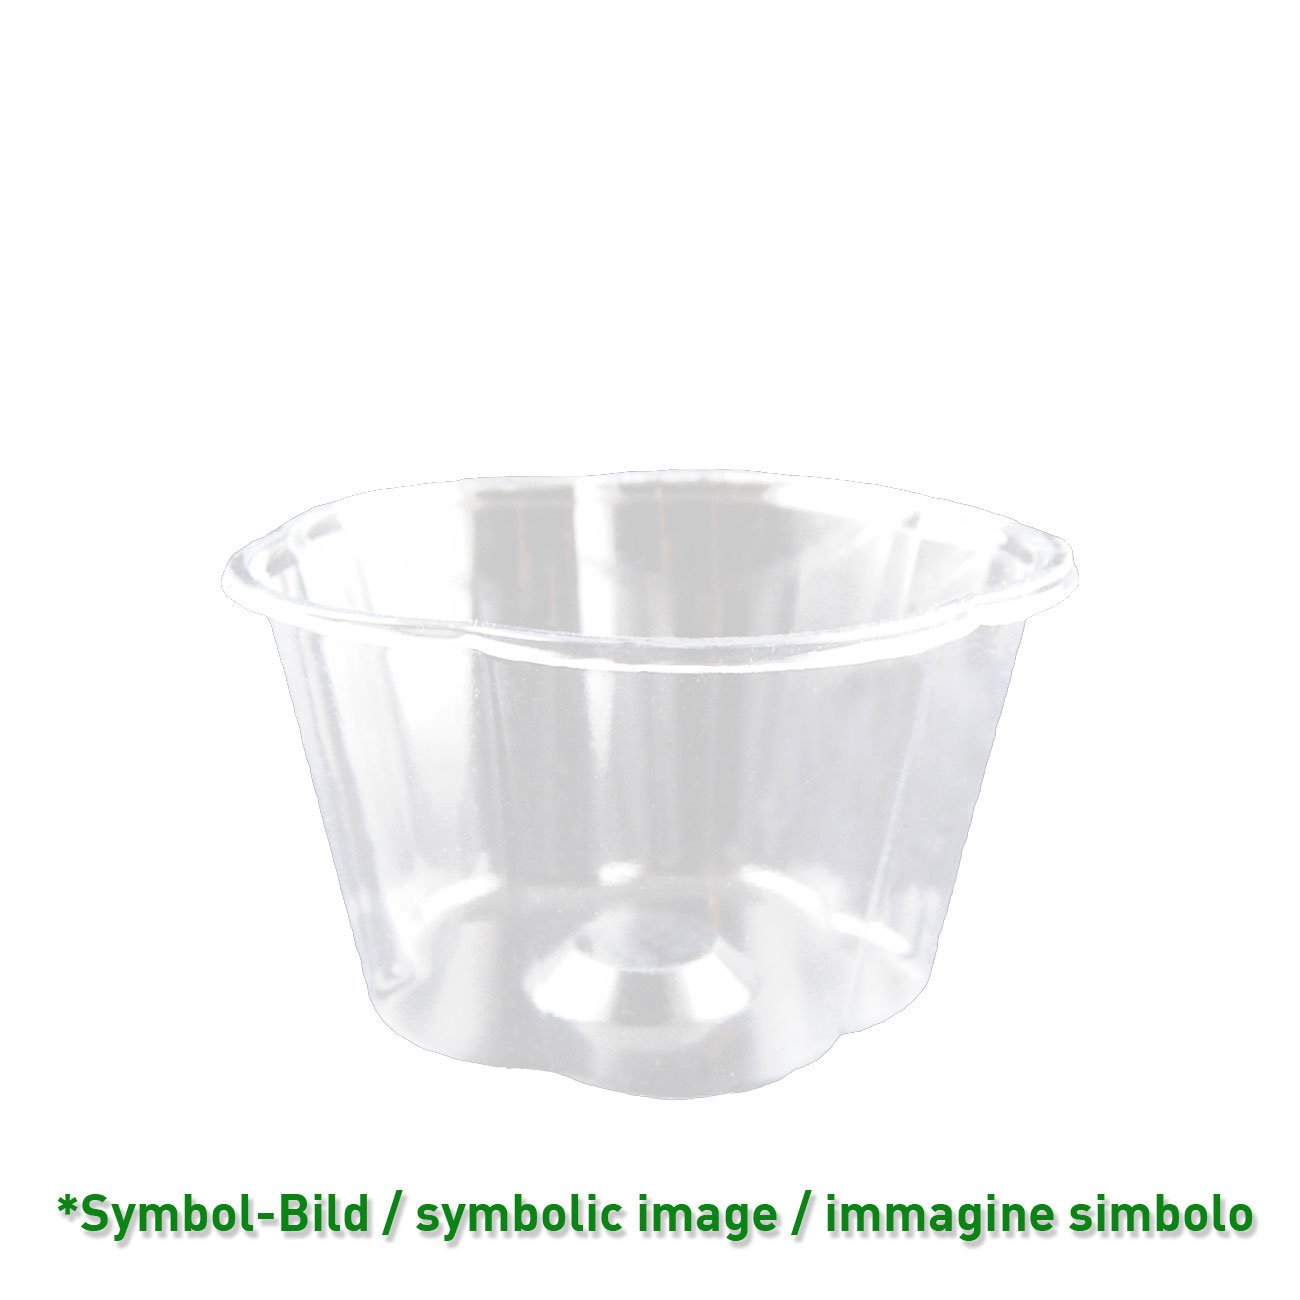 biodegradable Ice cream cup / 100 ccm / 1200 pieces - Ice cup bio PLA